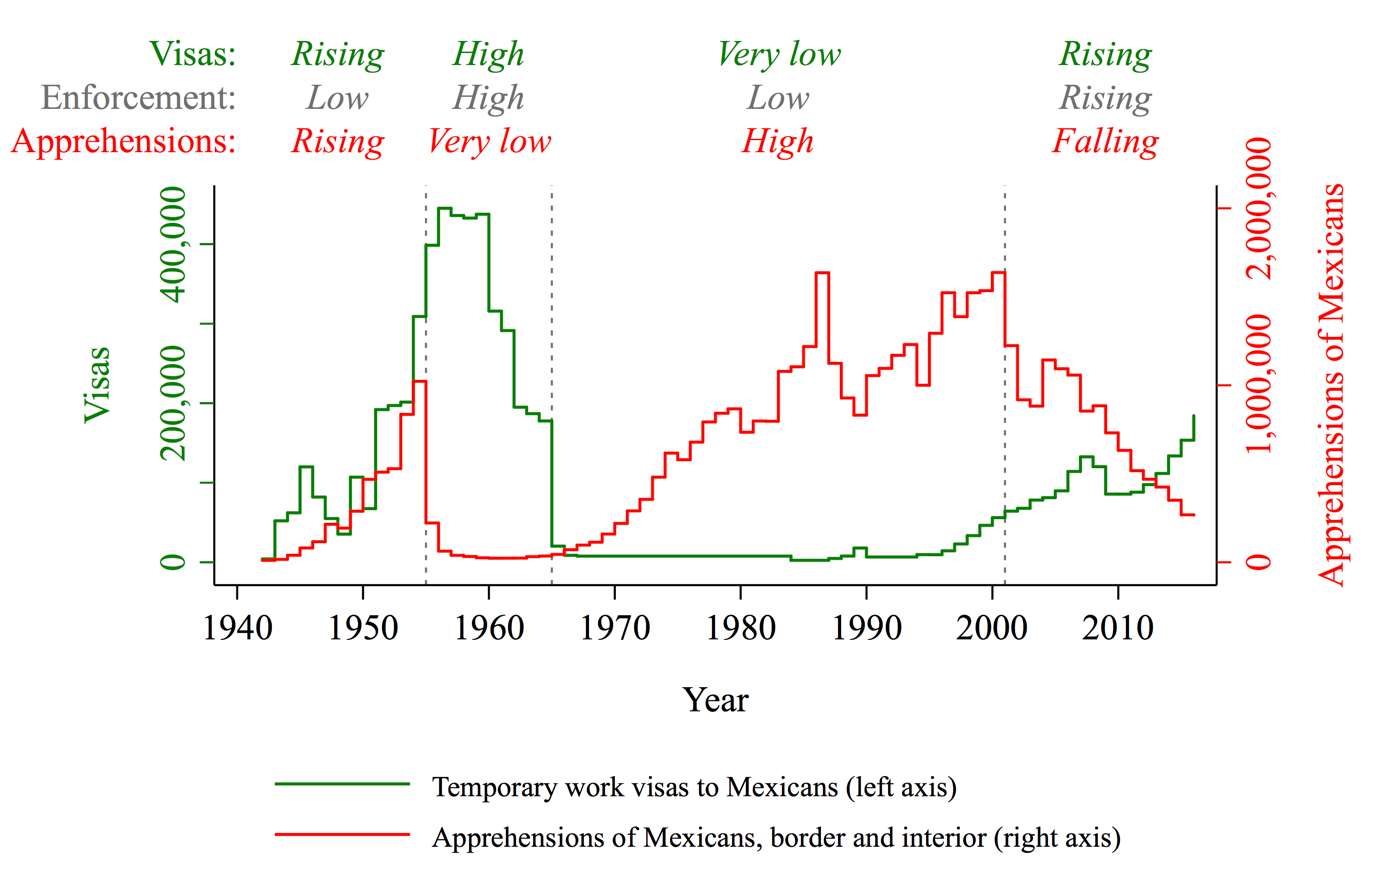 A graph of temporary work visas to Mexicans vs. apprehensions of irregular Mexican migrants between 1940 and the present